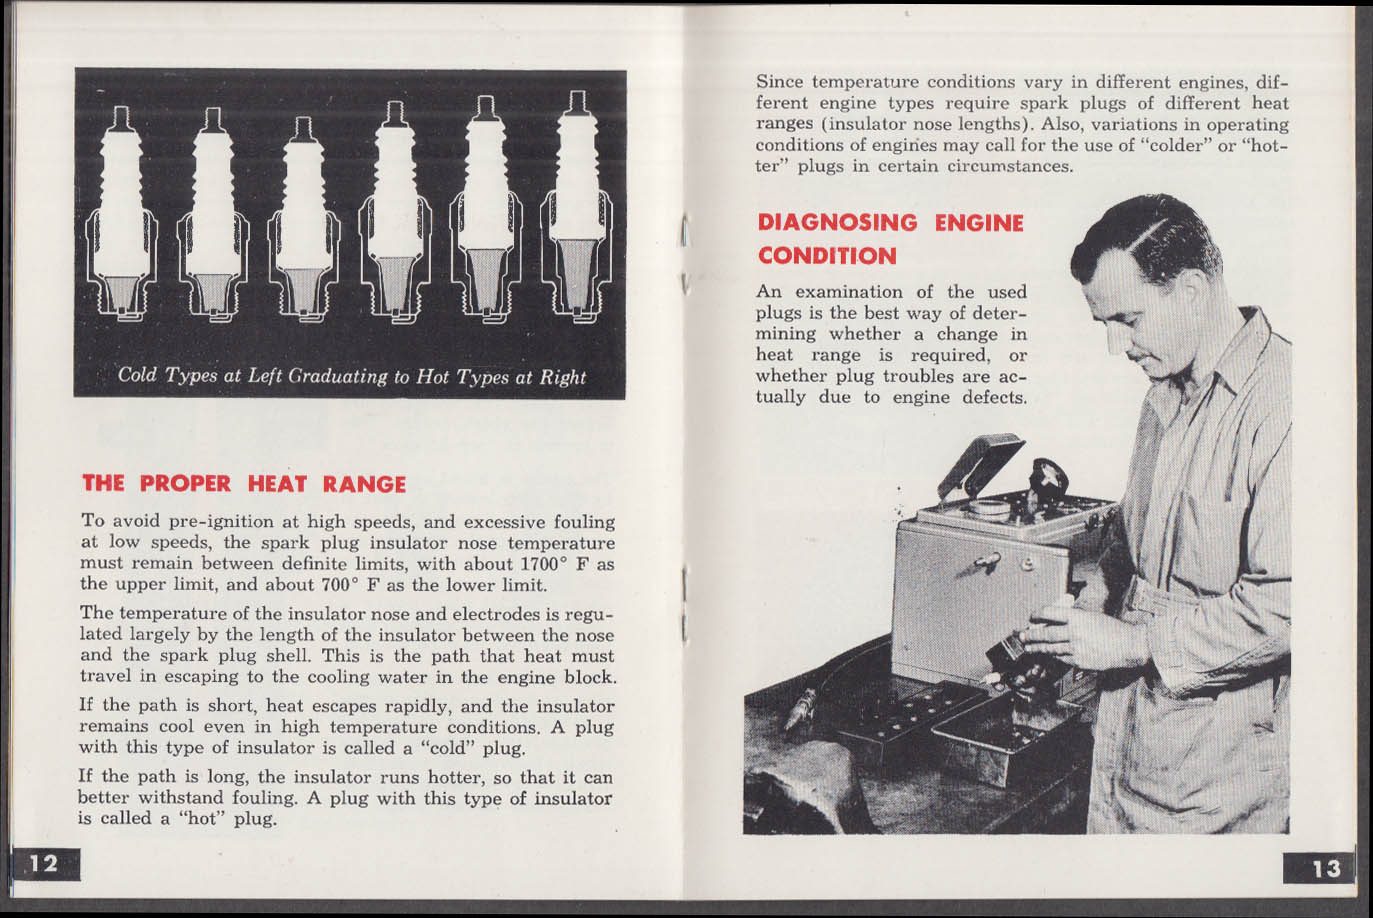 Facts About Champion Spark Plugs booklet 1957 Toledo OH